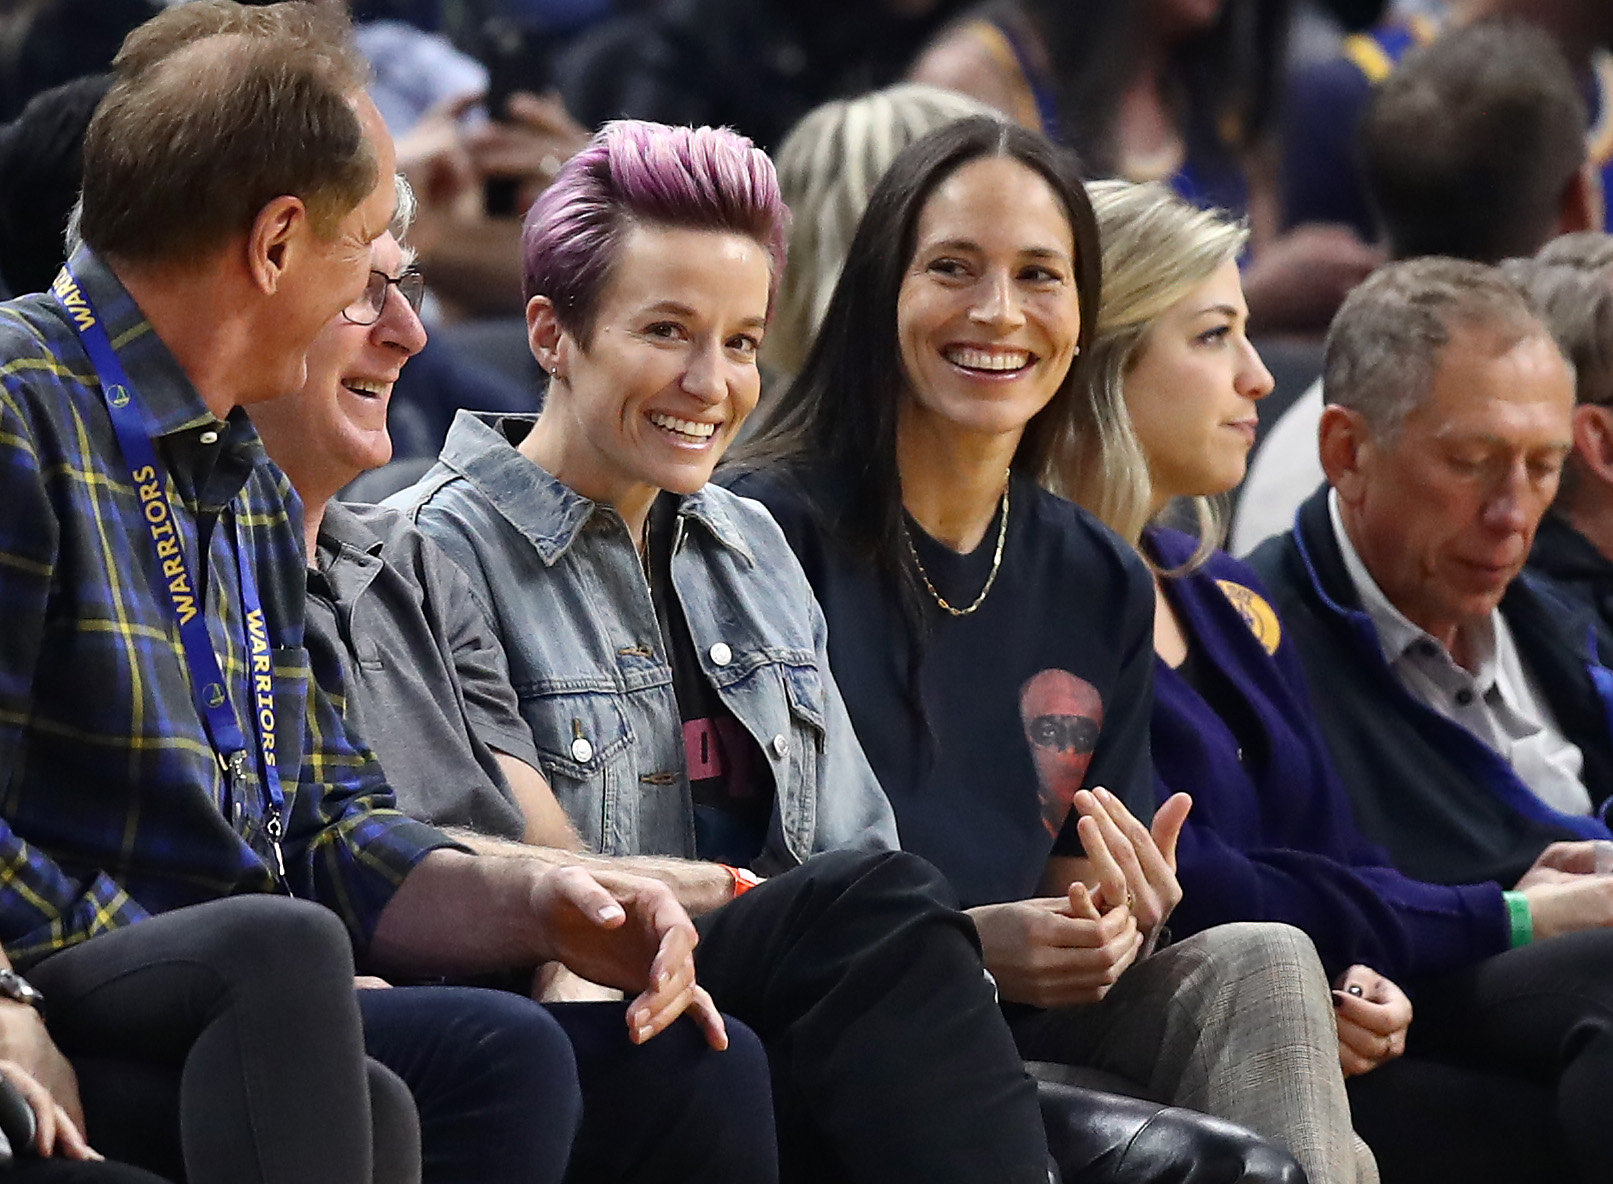 Sports power couple Megan Rapinoe and WNBA star Sue Bird watch an NBA game